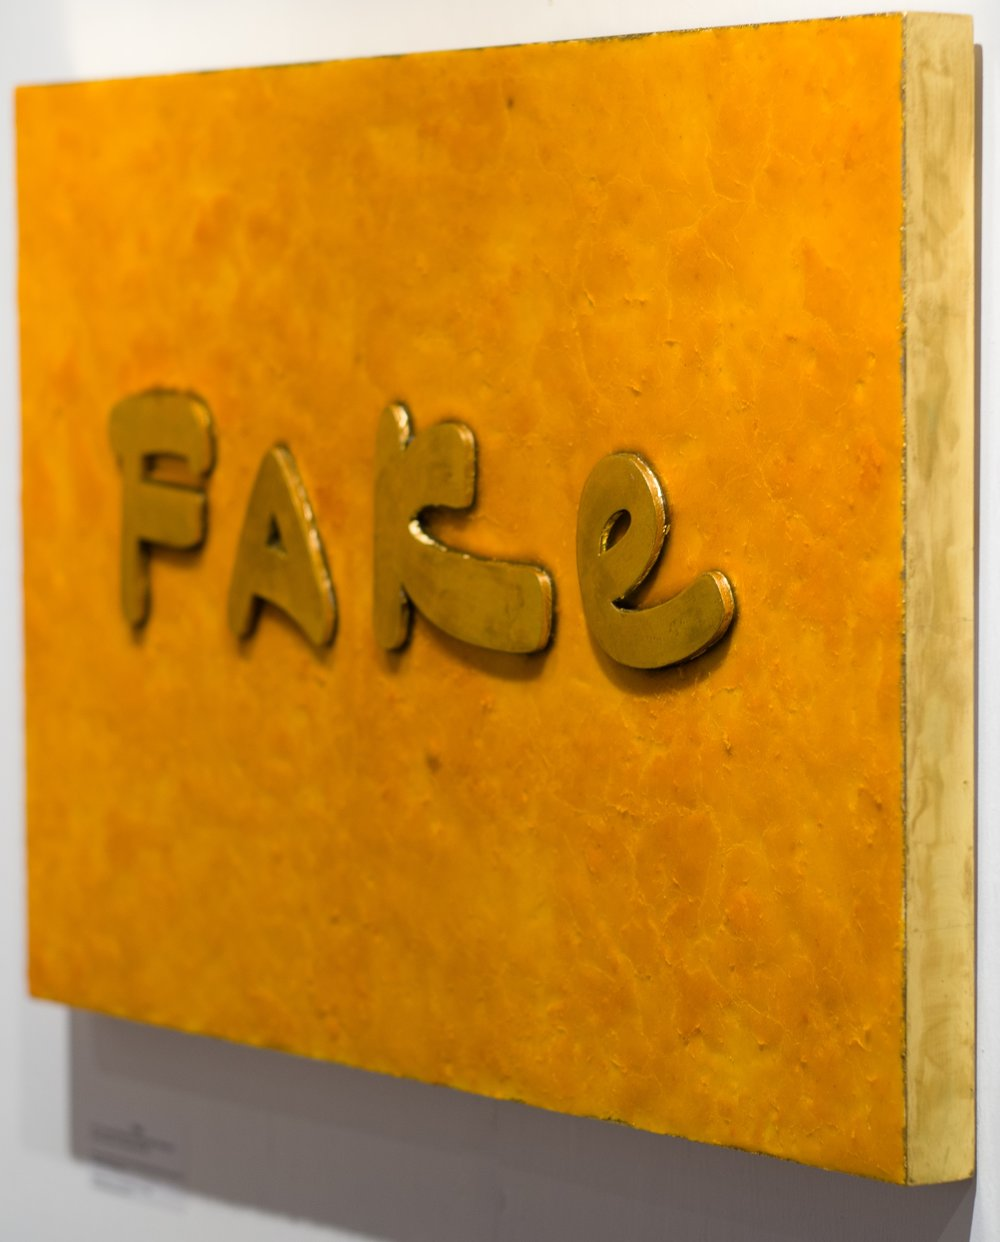 Fake   (Detail of fake gold lettering and edge)